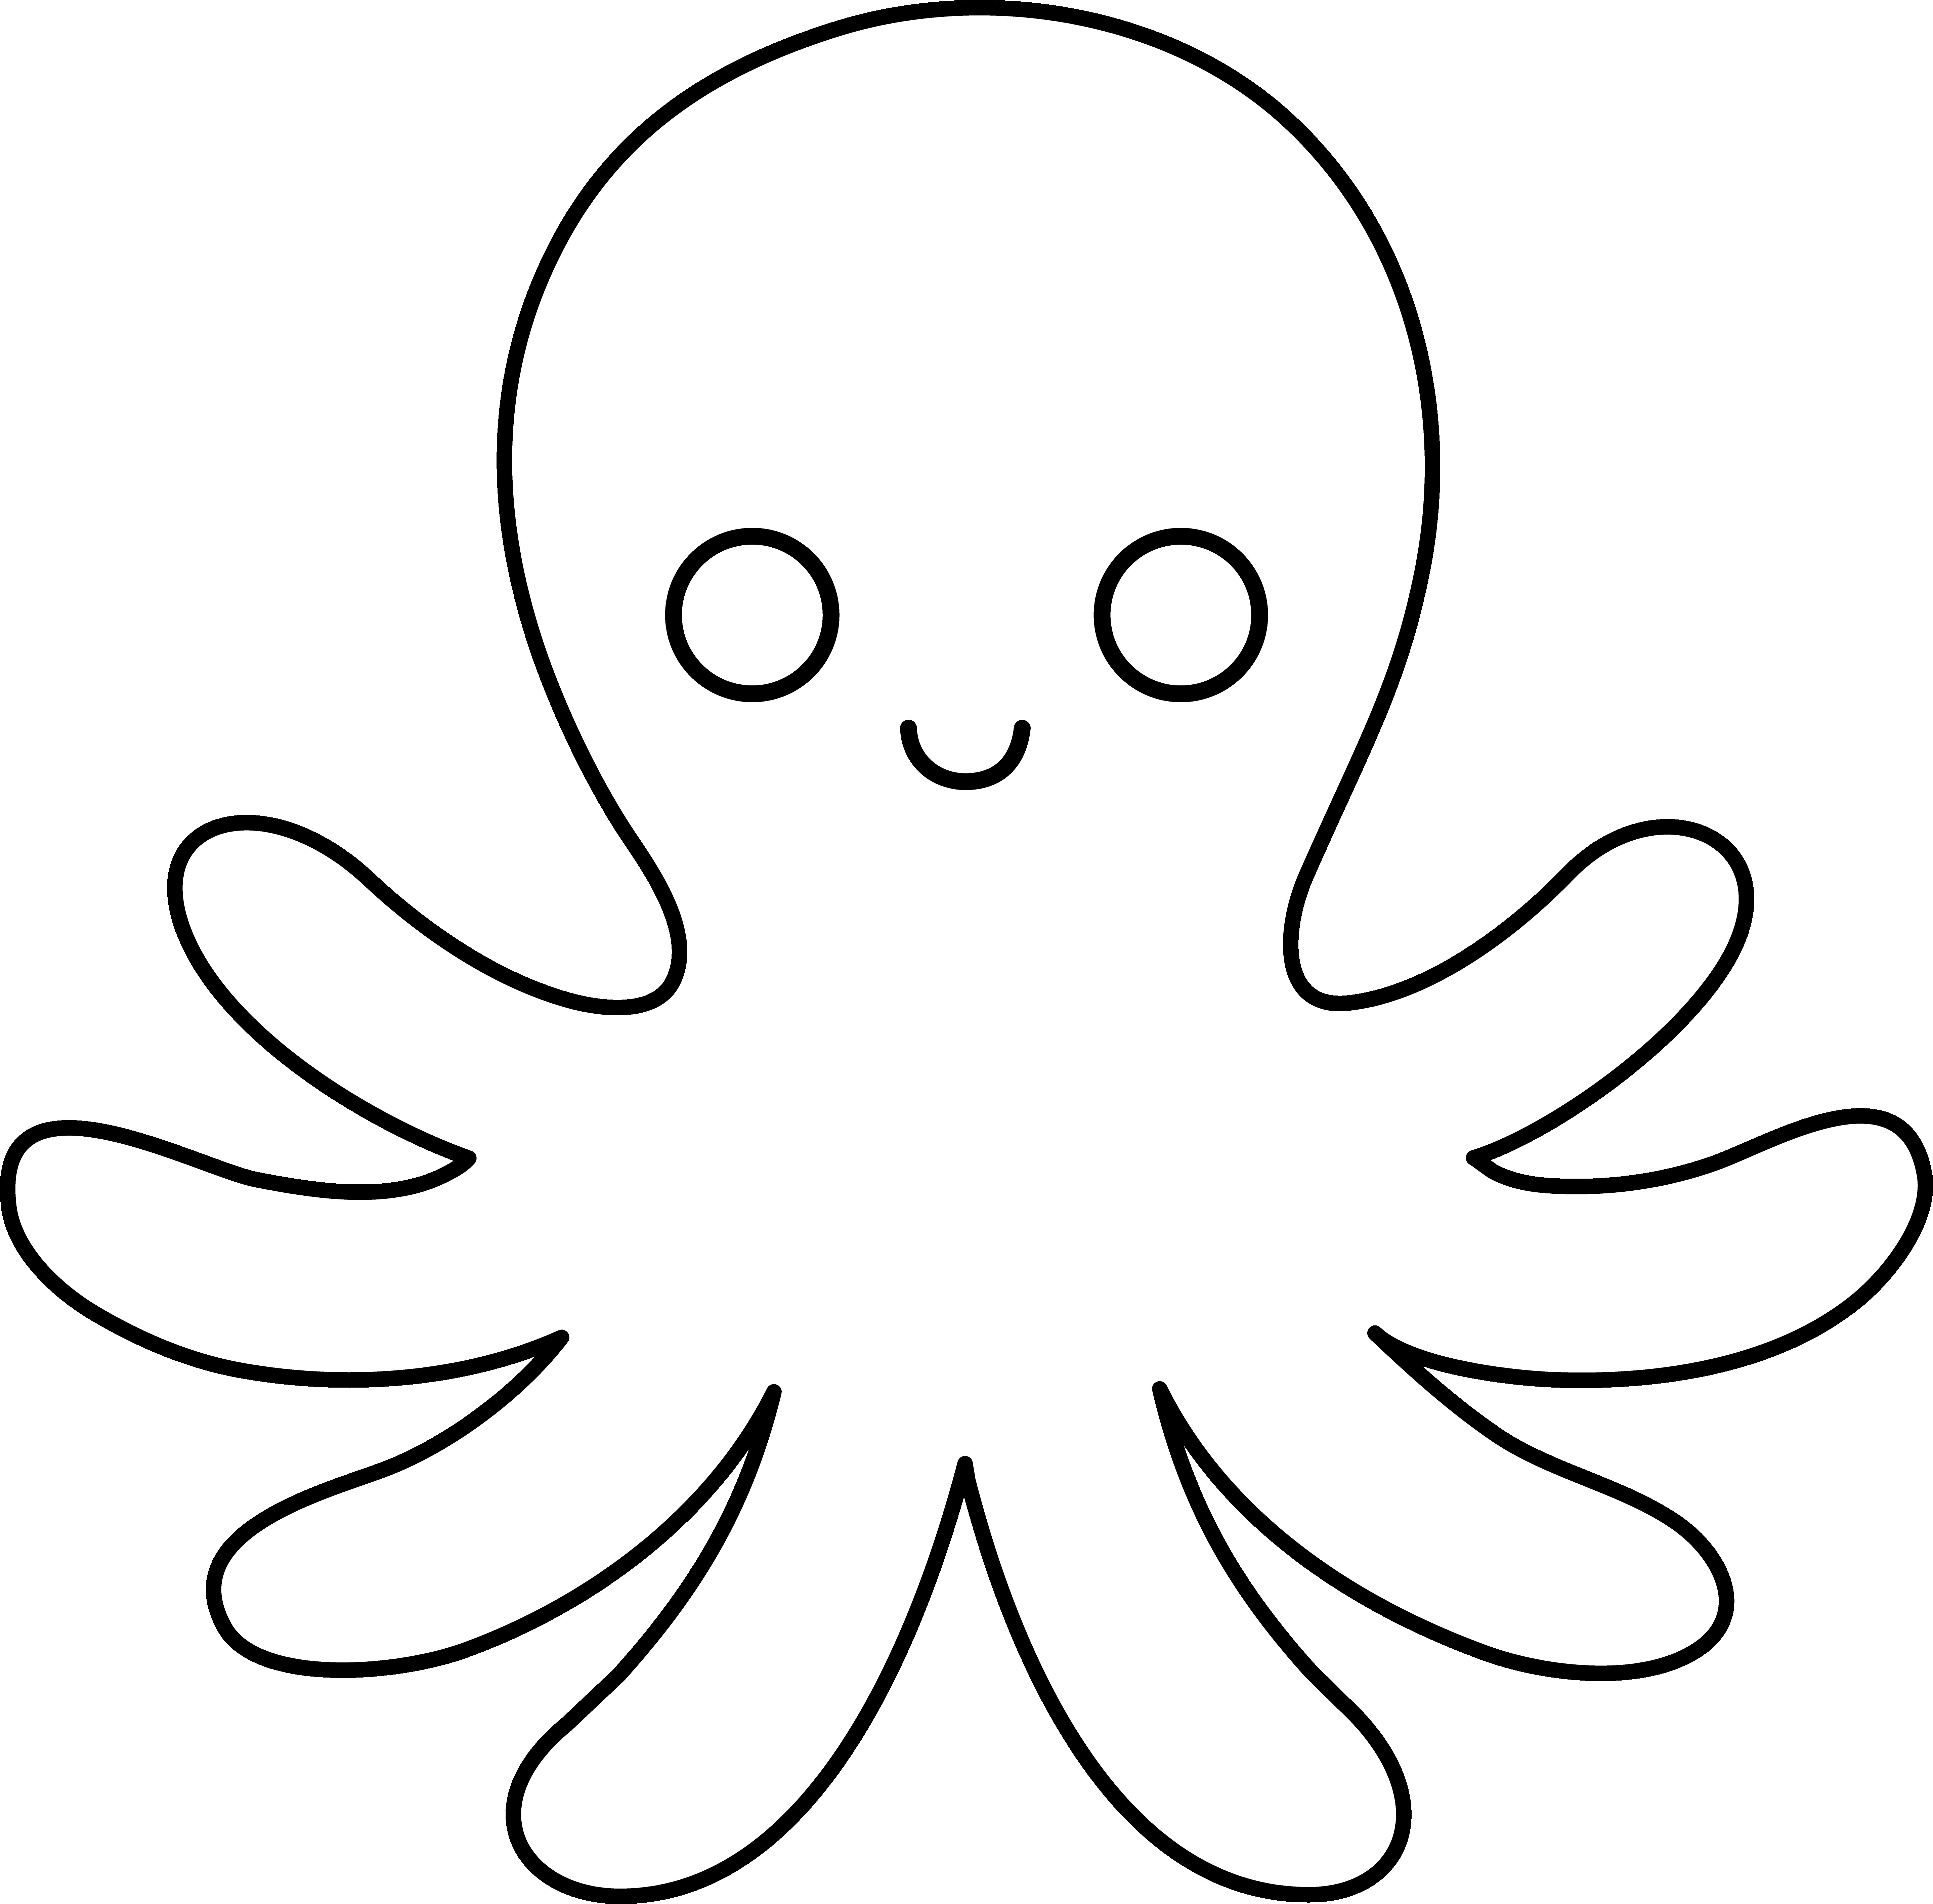 Octopus clipart outline banner freeuse download Octopus Clipart Black And White Line Art At | Clipart banner freeuse download